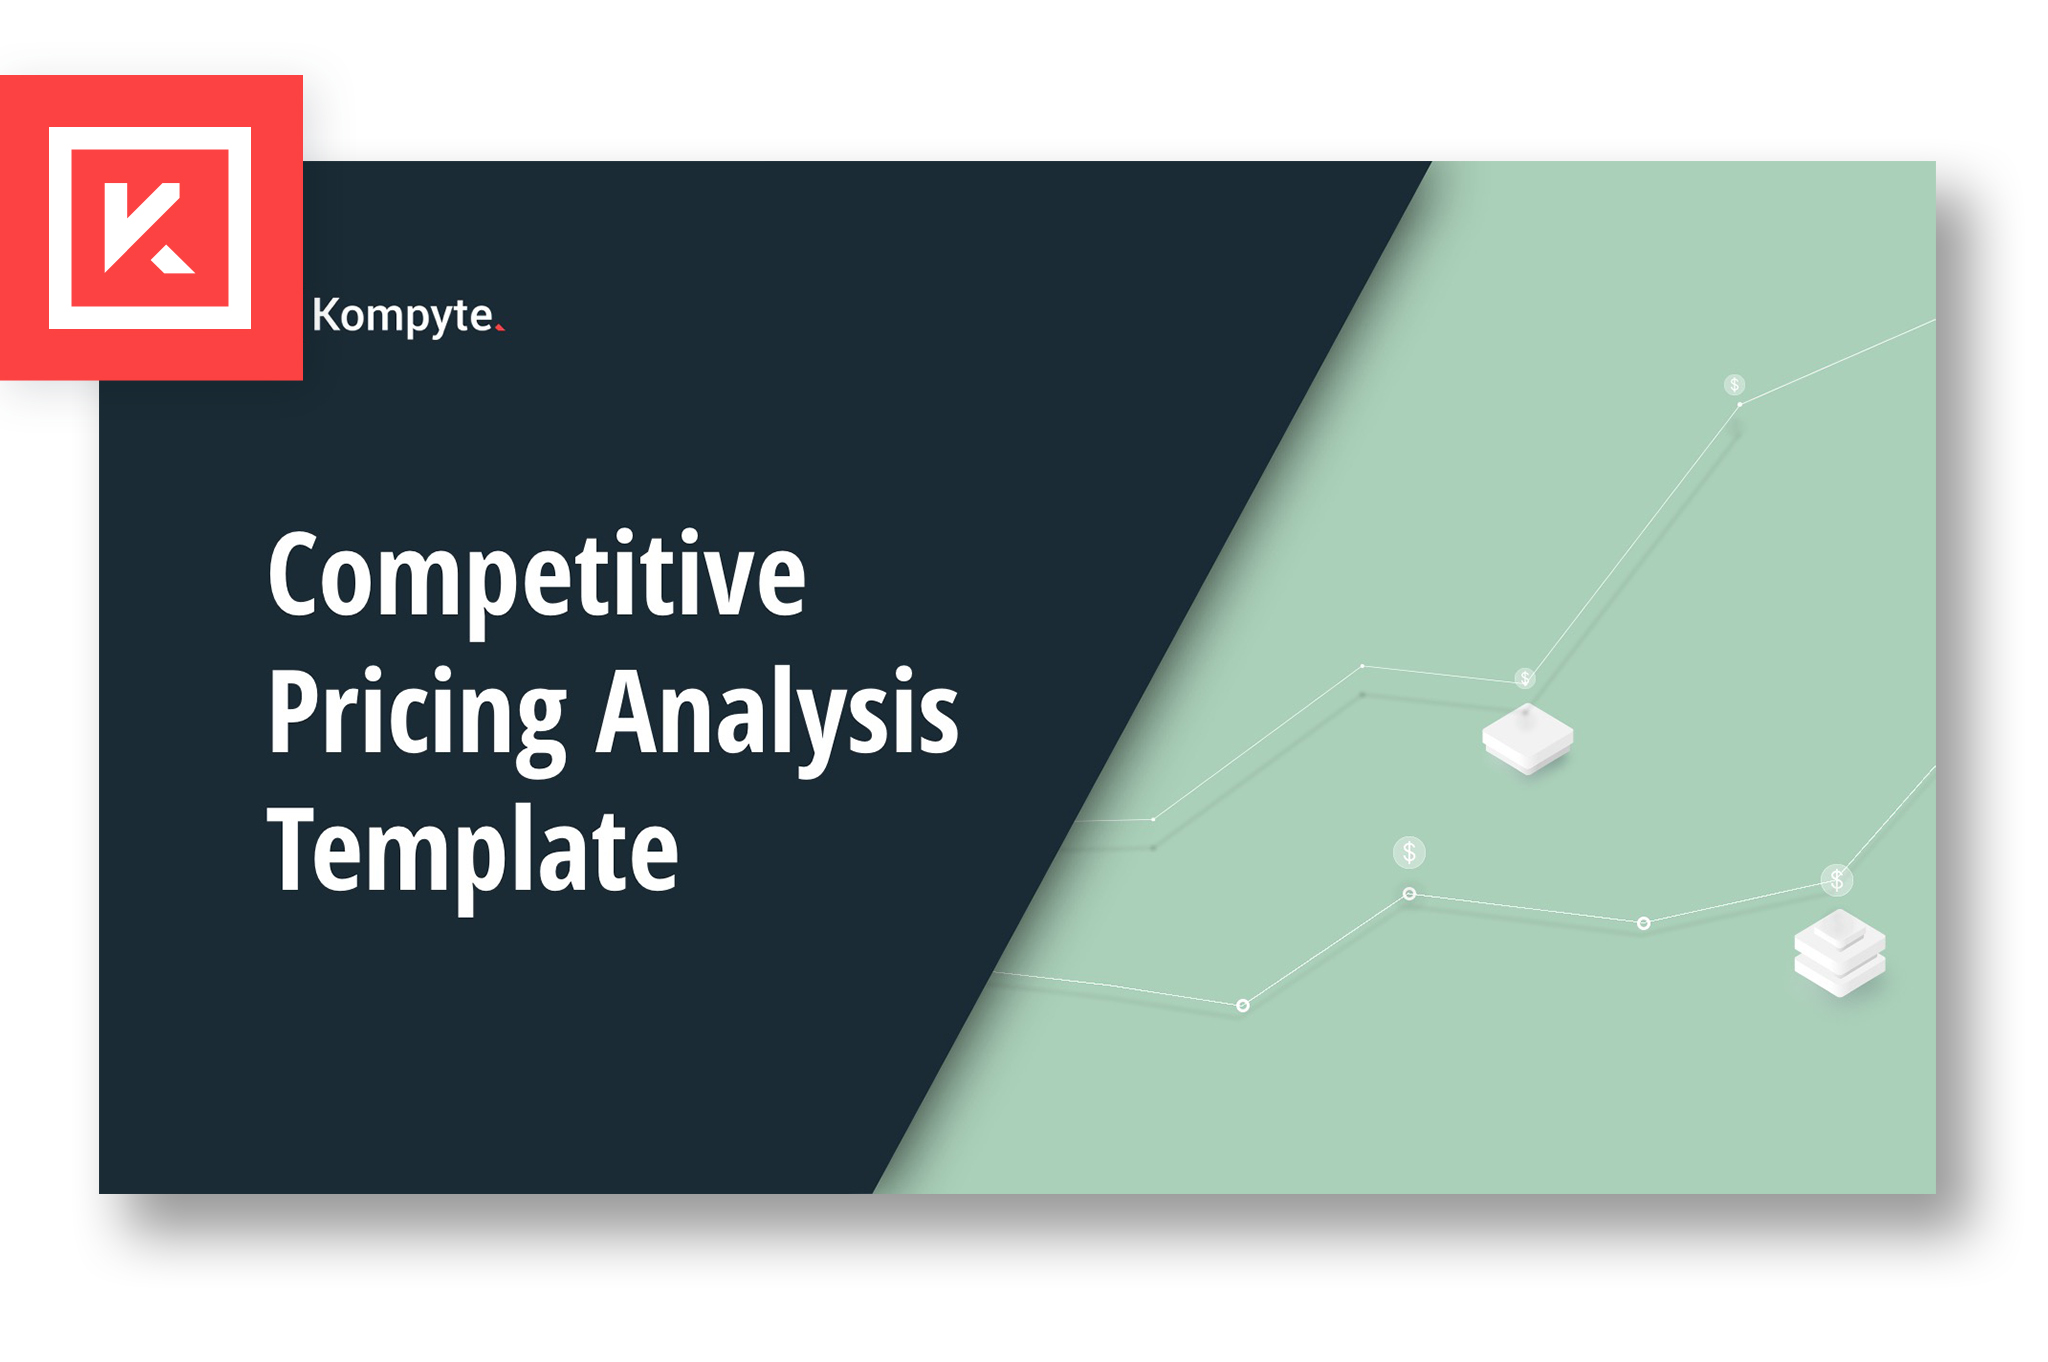 Competitive Pricing Analysis Template | Kompyte